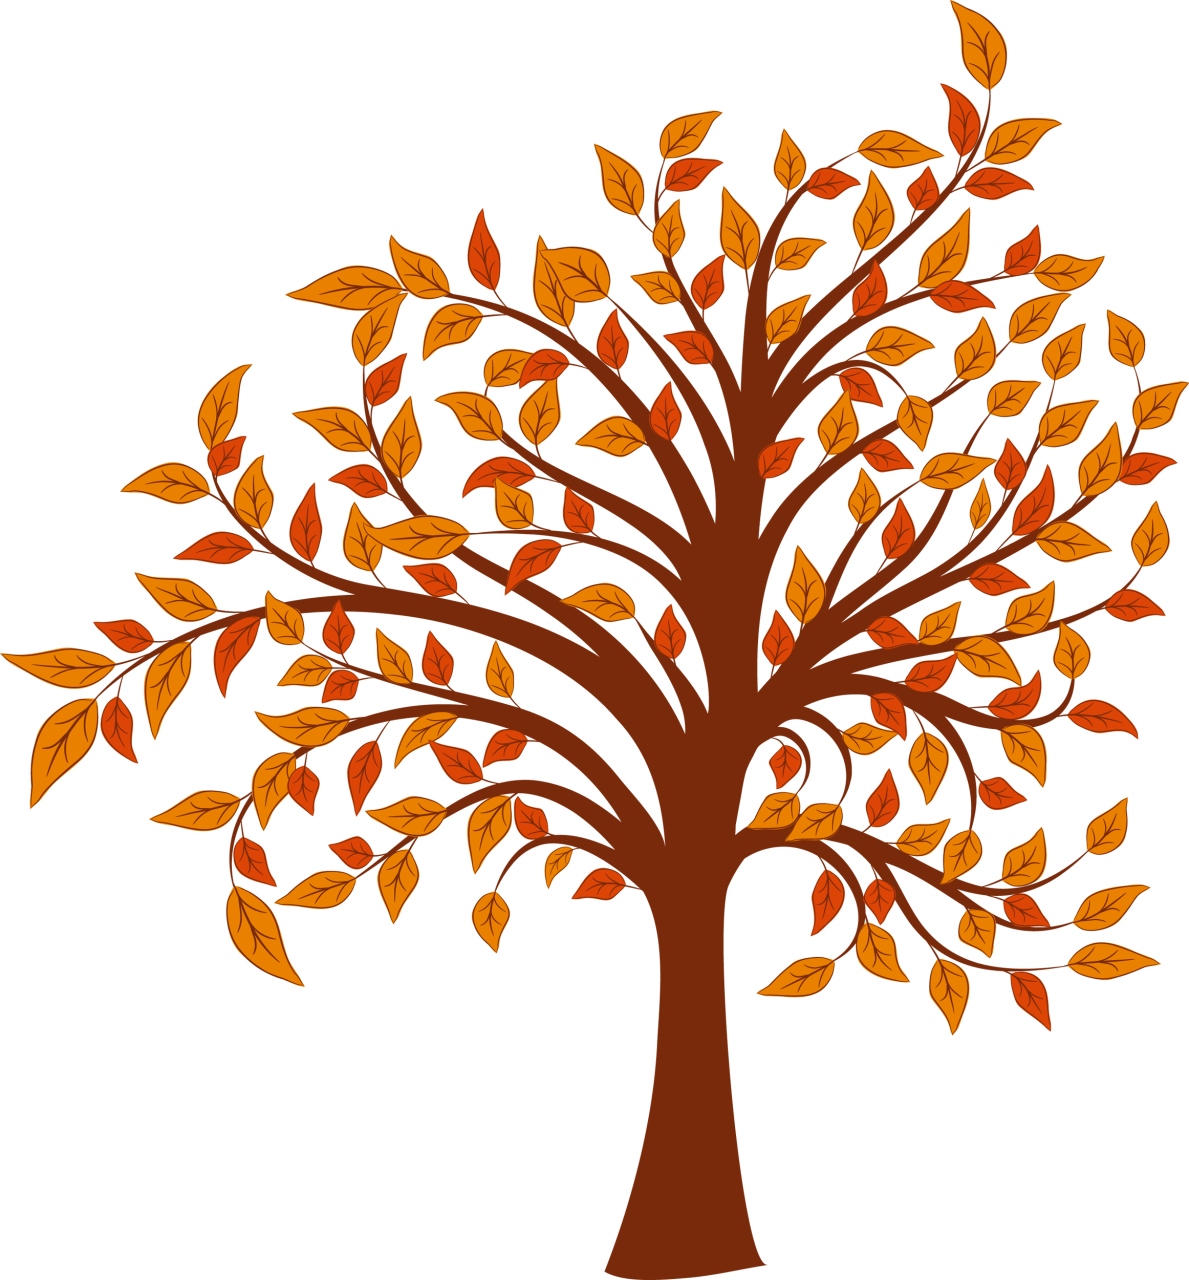 Autumn Cartoon Tree Clip art.